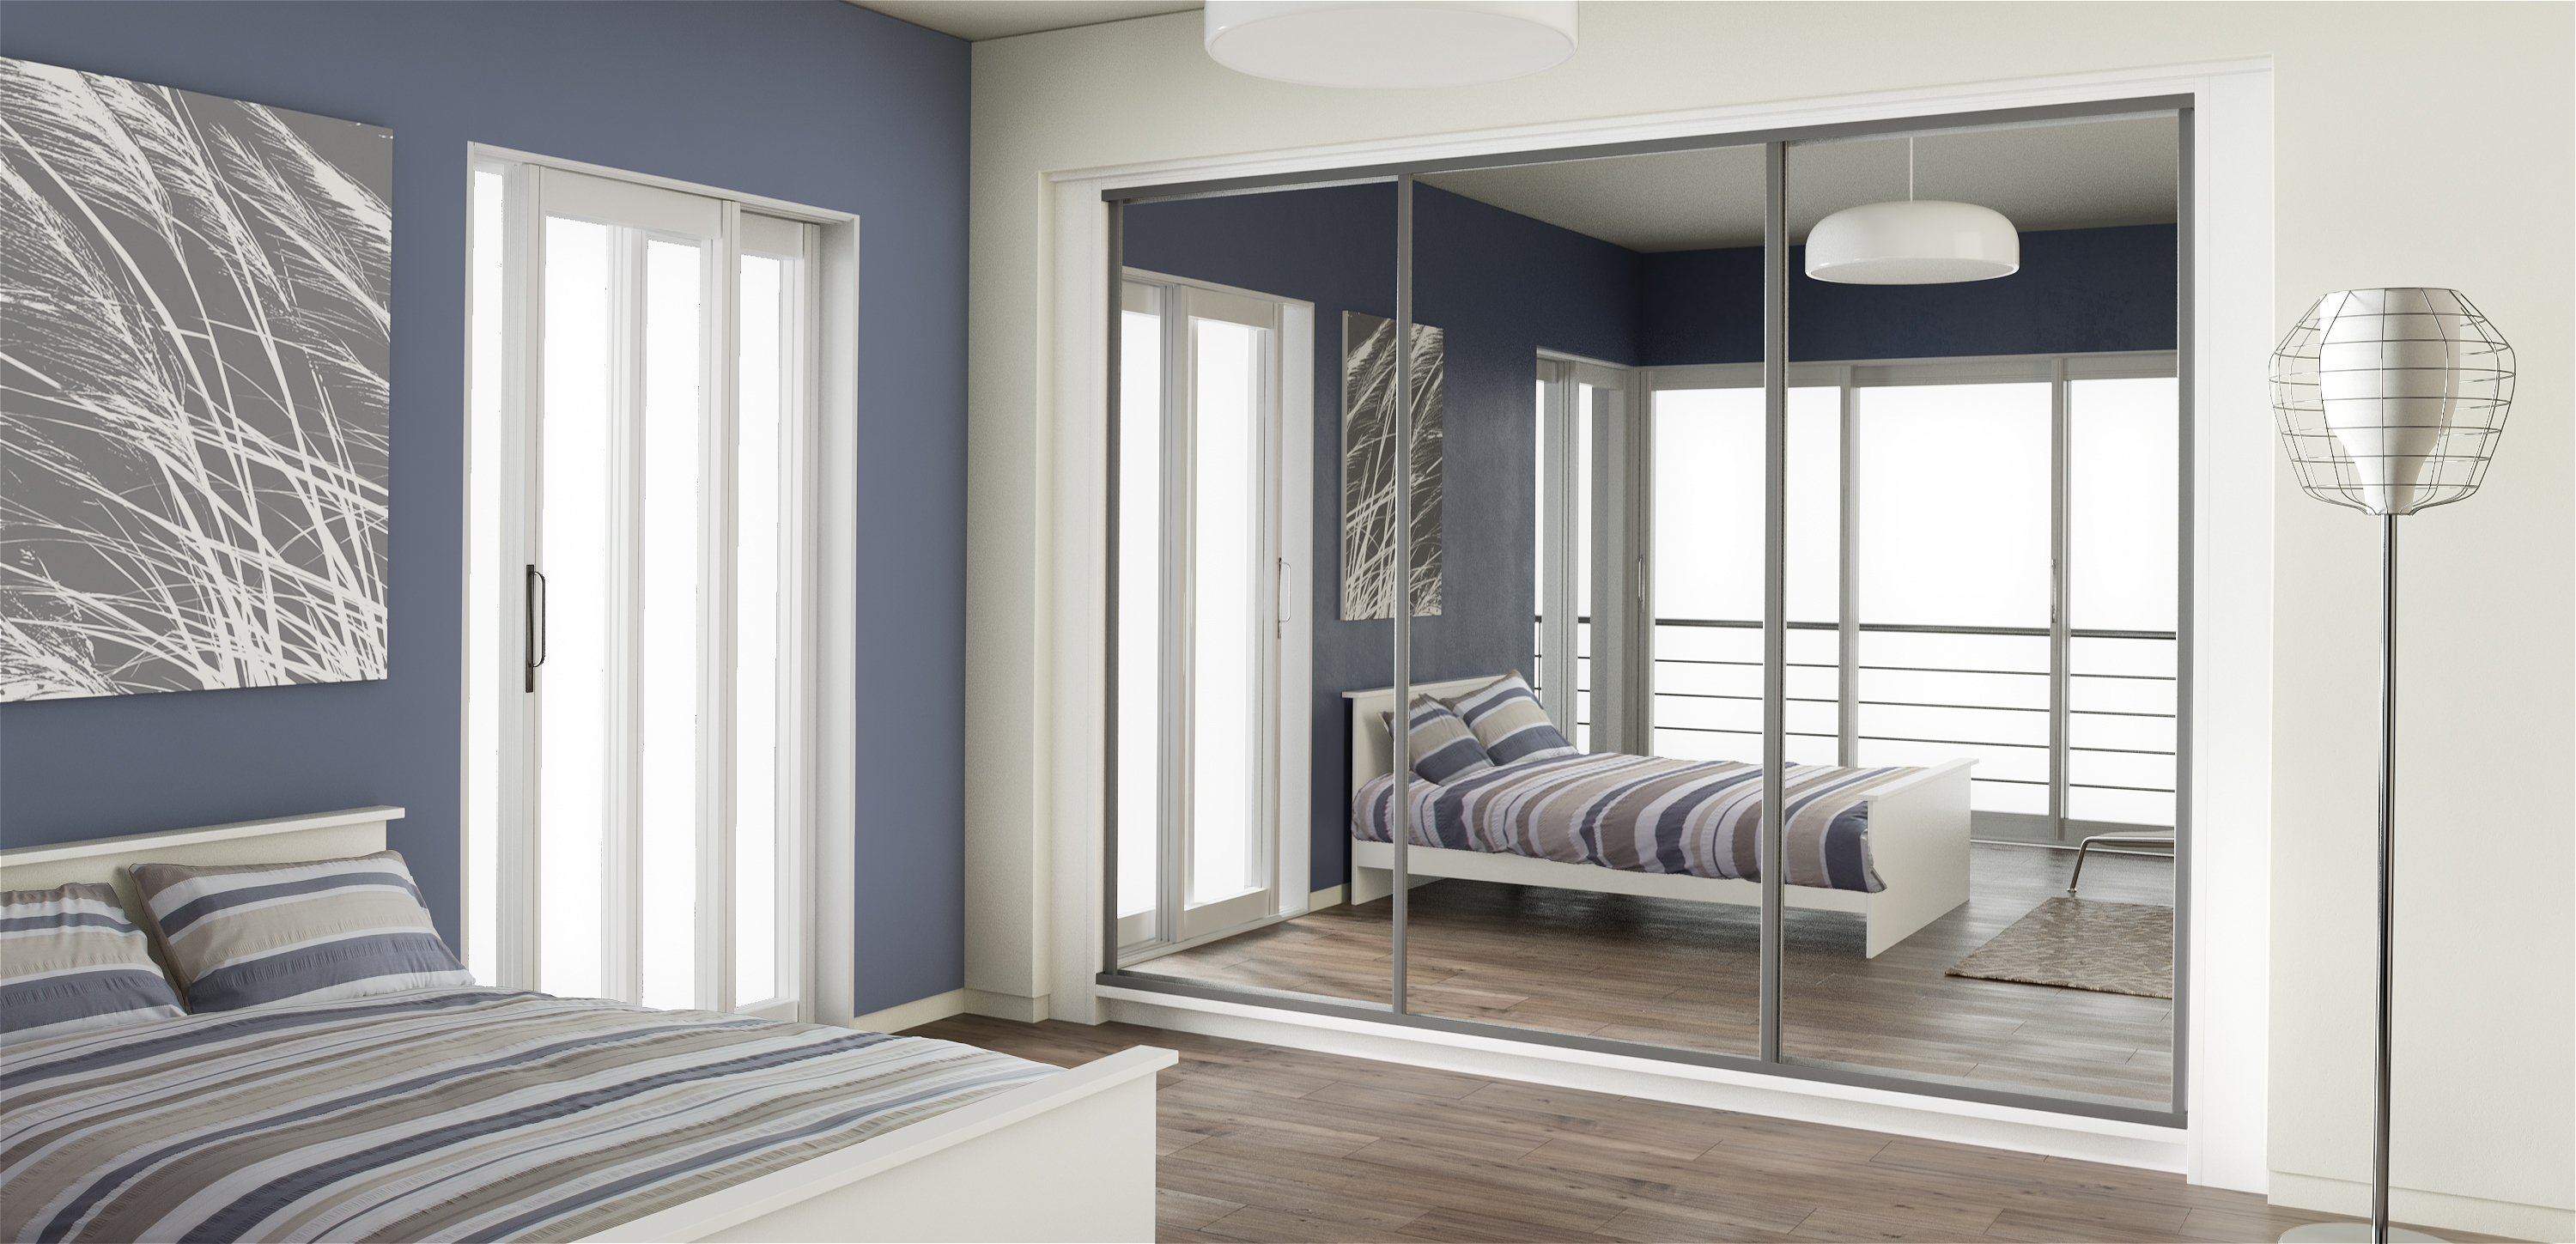 Most Popular Mirror Design Ideas: Robes Brand Bedroom Mirrored Wardrobes Lens Within Full Mirrored Wardrobes (View 5 of 15)